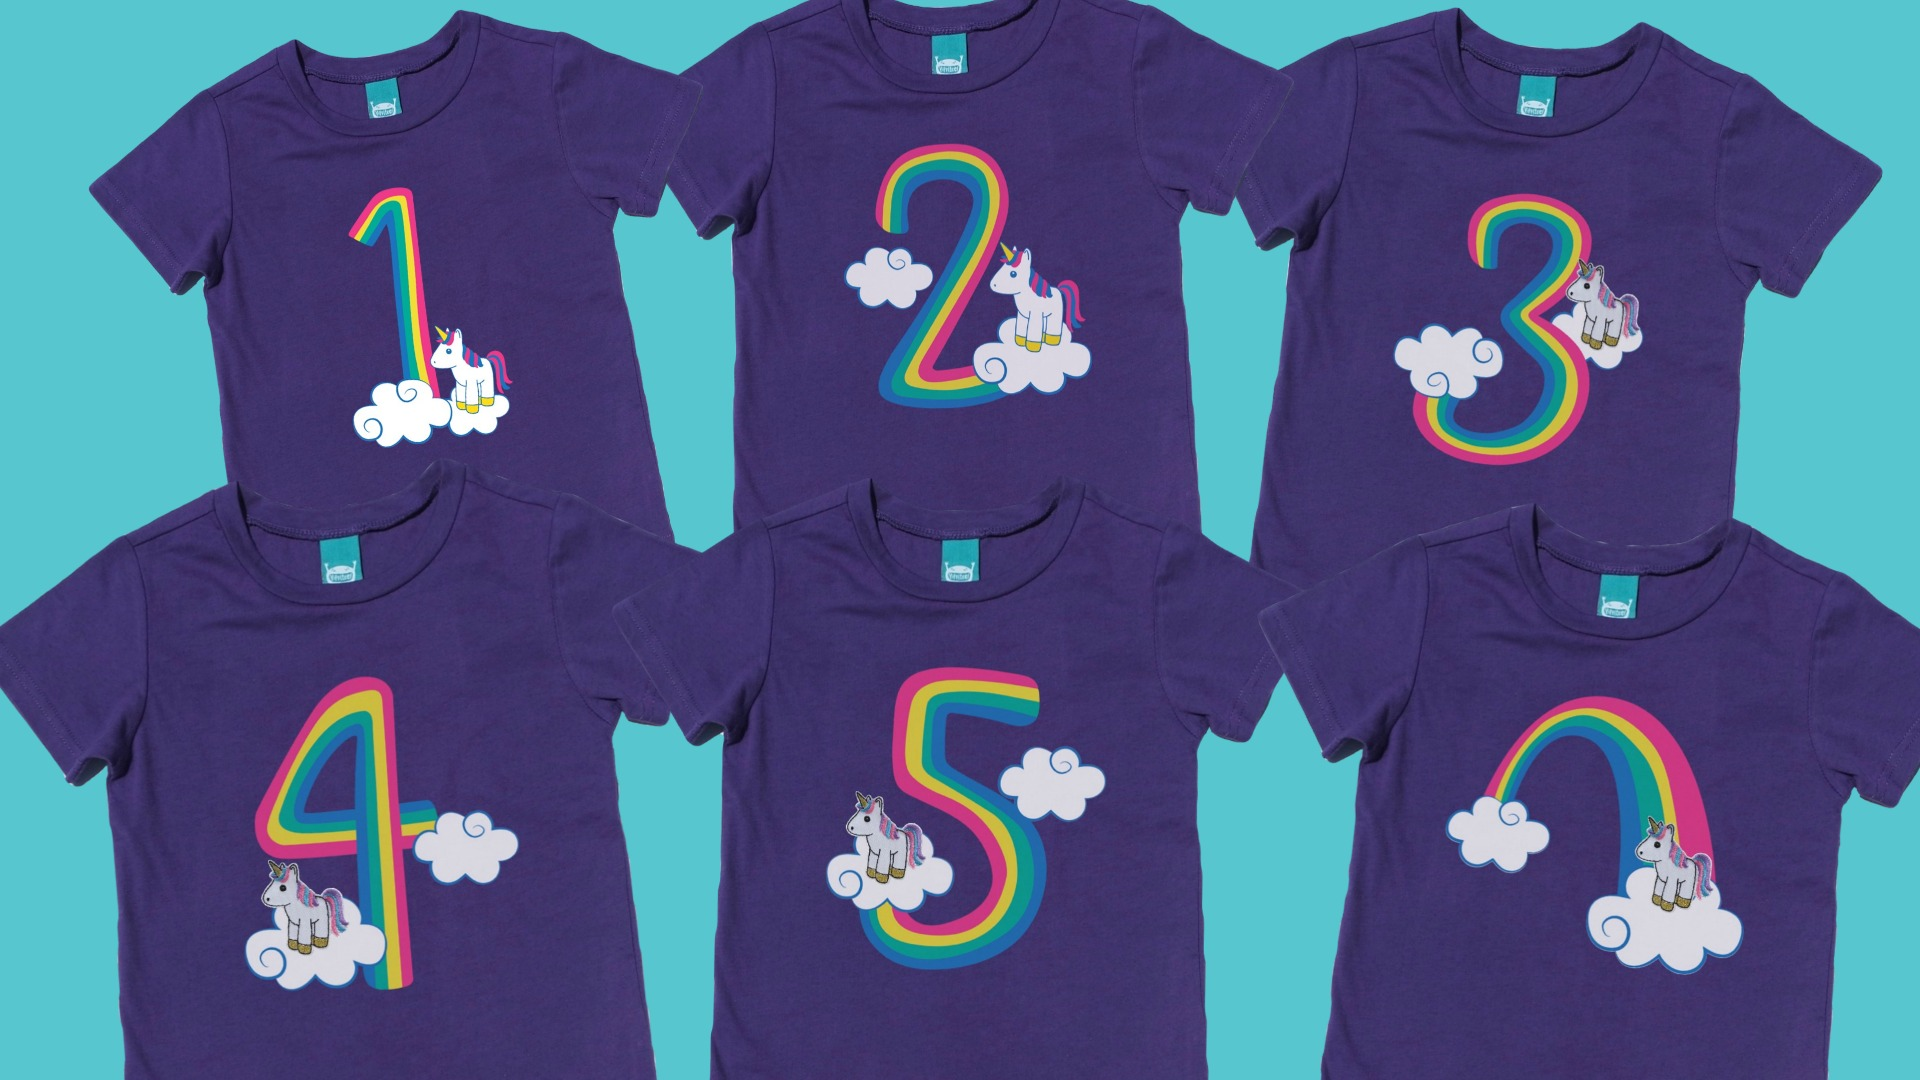 These Adorable Rainbow Unicorn Birthday Shirts Have Finger Puppets That Snap On And Off For Play